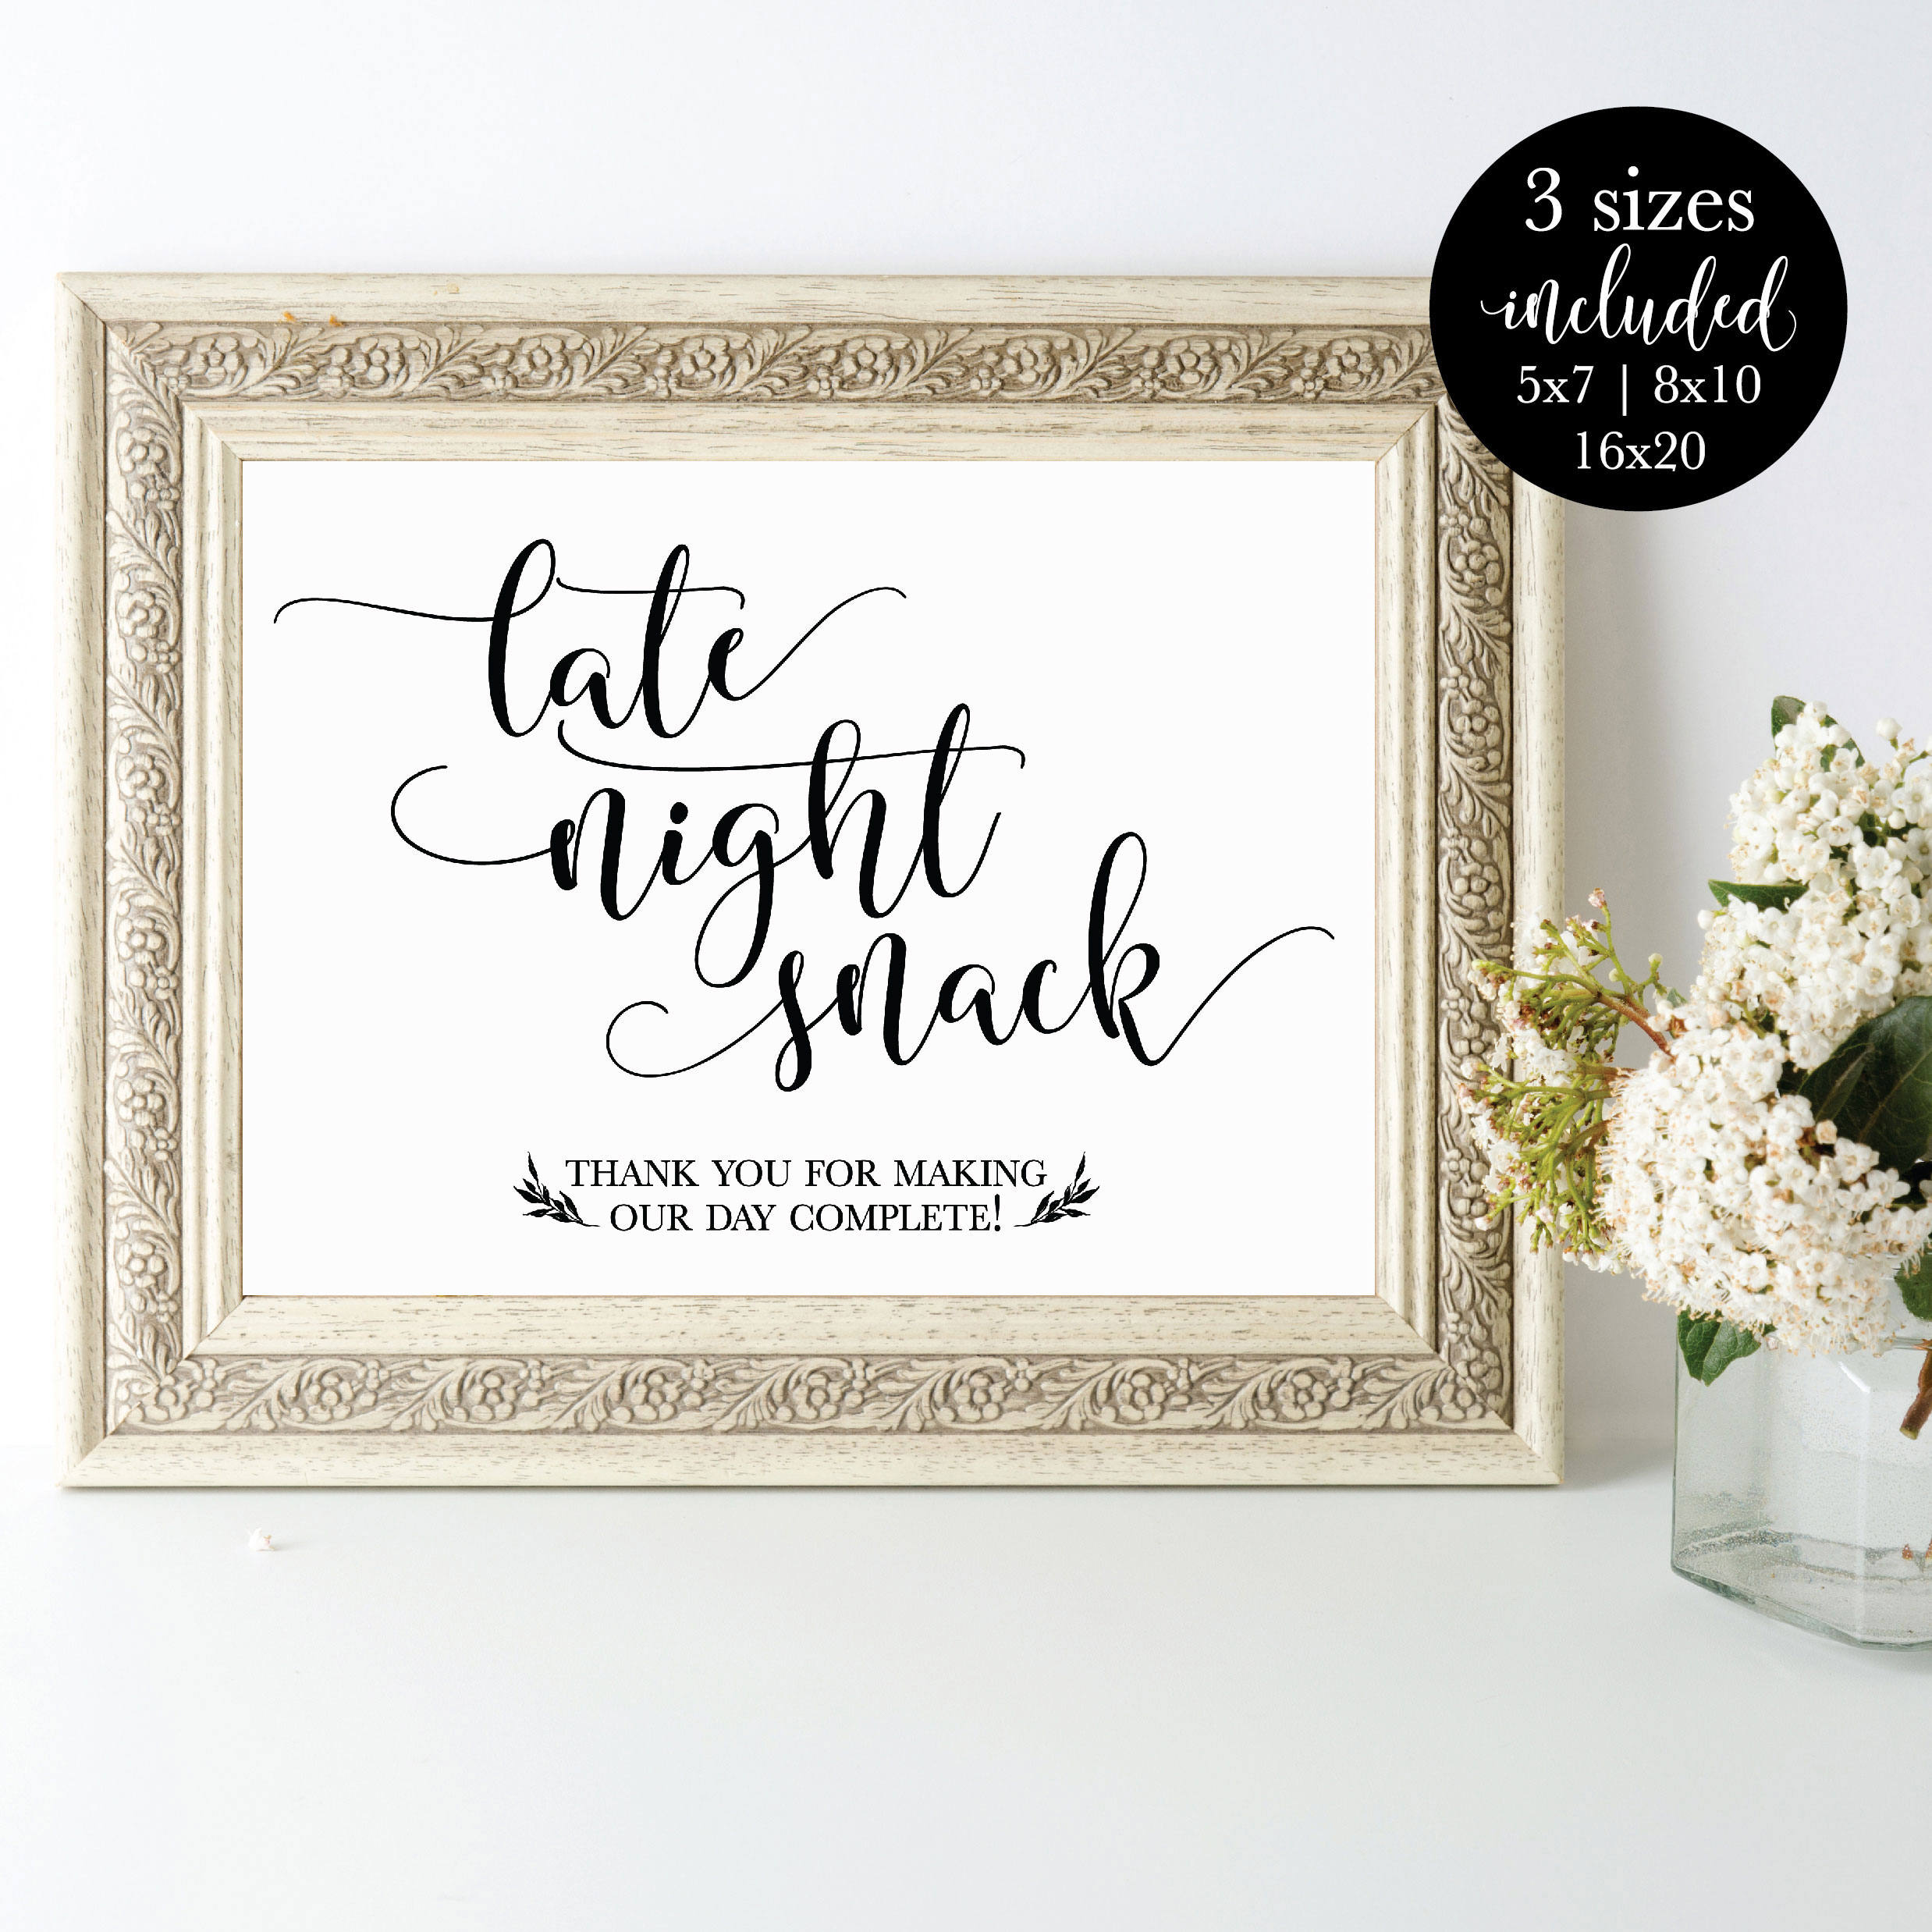 Late Night Snack Ideas For Weddings: Late Night Snack Printable Wedding Party Sign Rustic Food